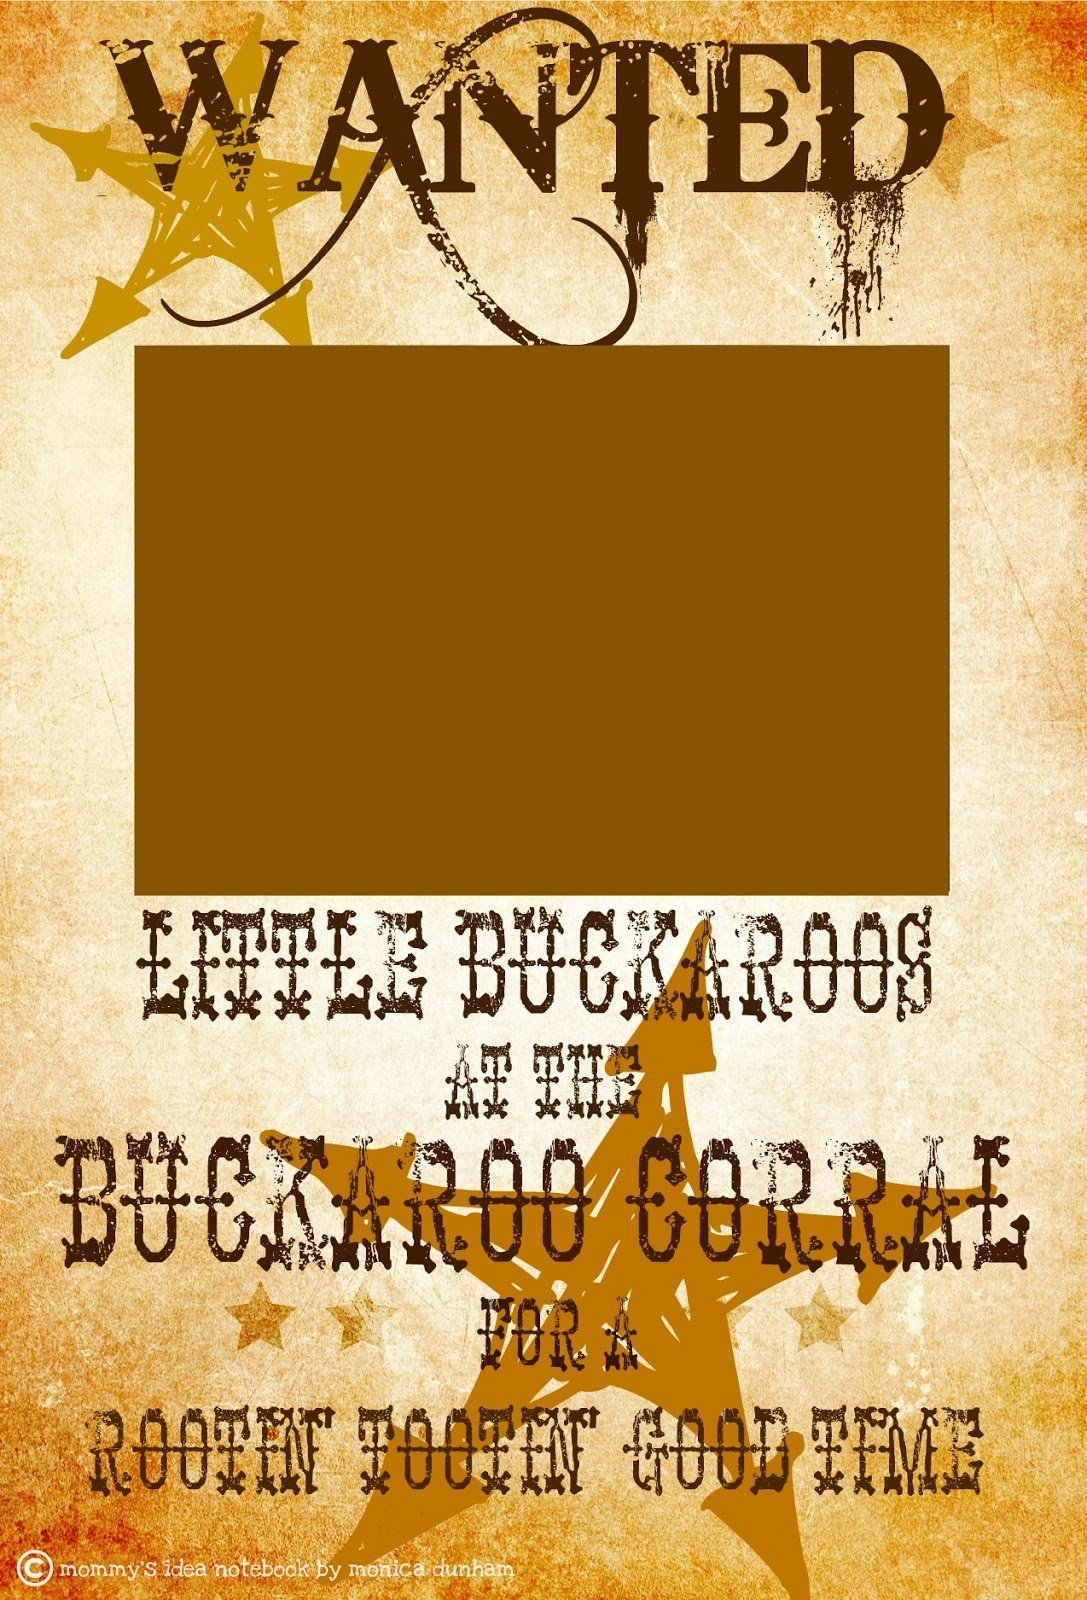 Free Western Invitation Templates Elegant Dunham Design Pany Giddy Up It S Cowboy Western Free Party Printables